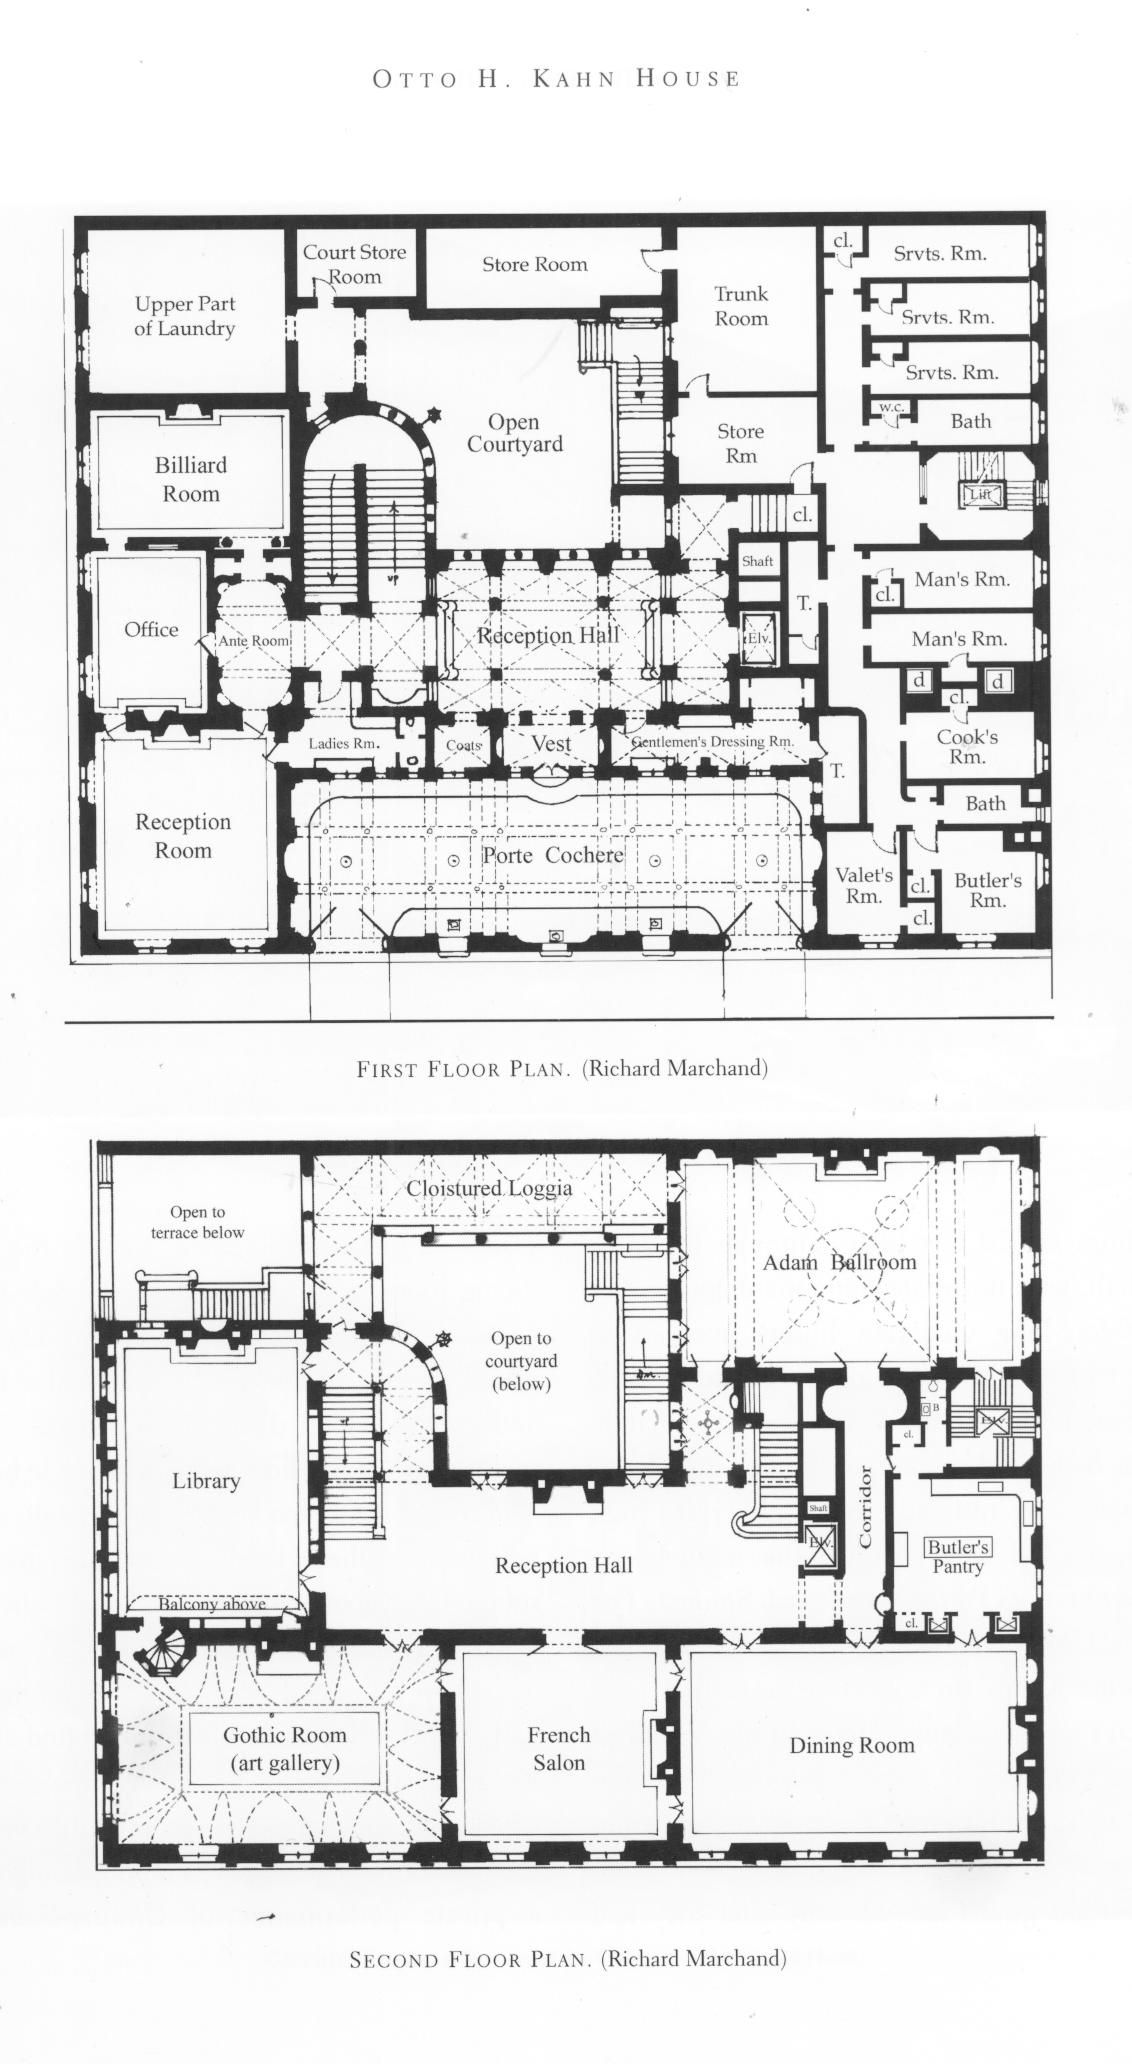 Otto Khan Mansion Part 1 Mansion Floor Plan Architectural Floor Plans Floor Plan Design